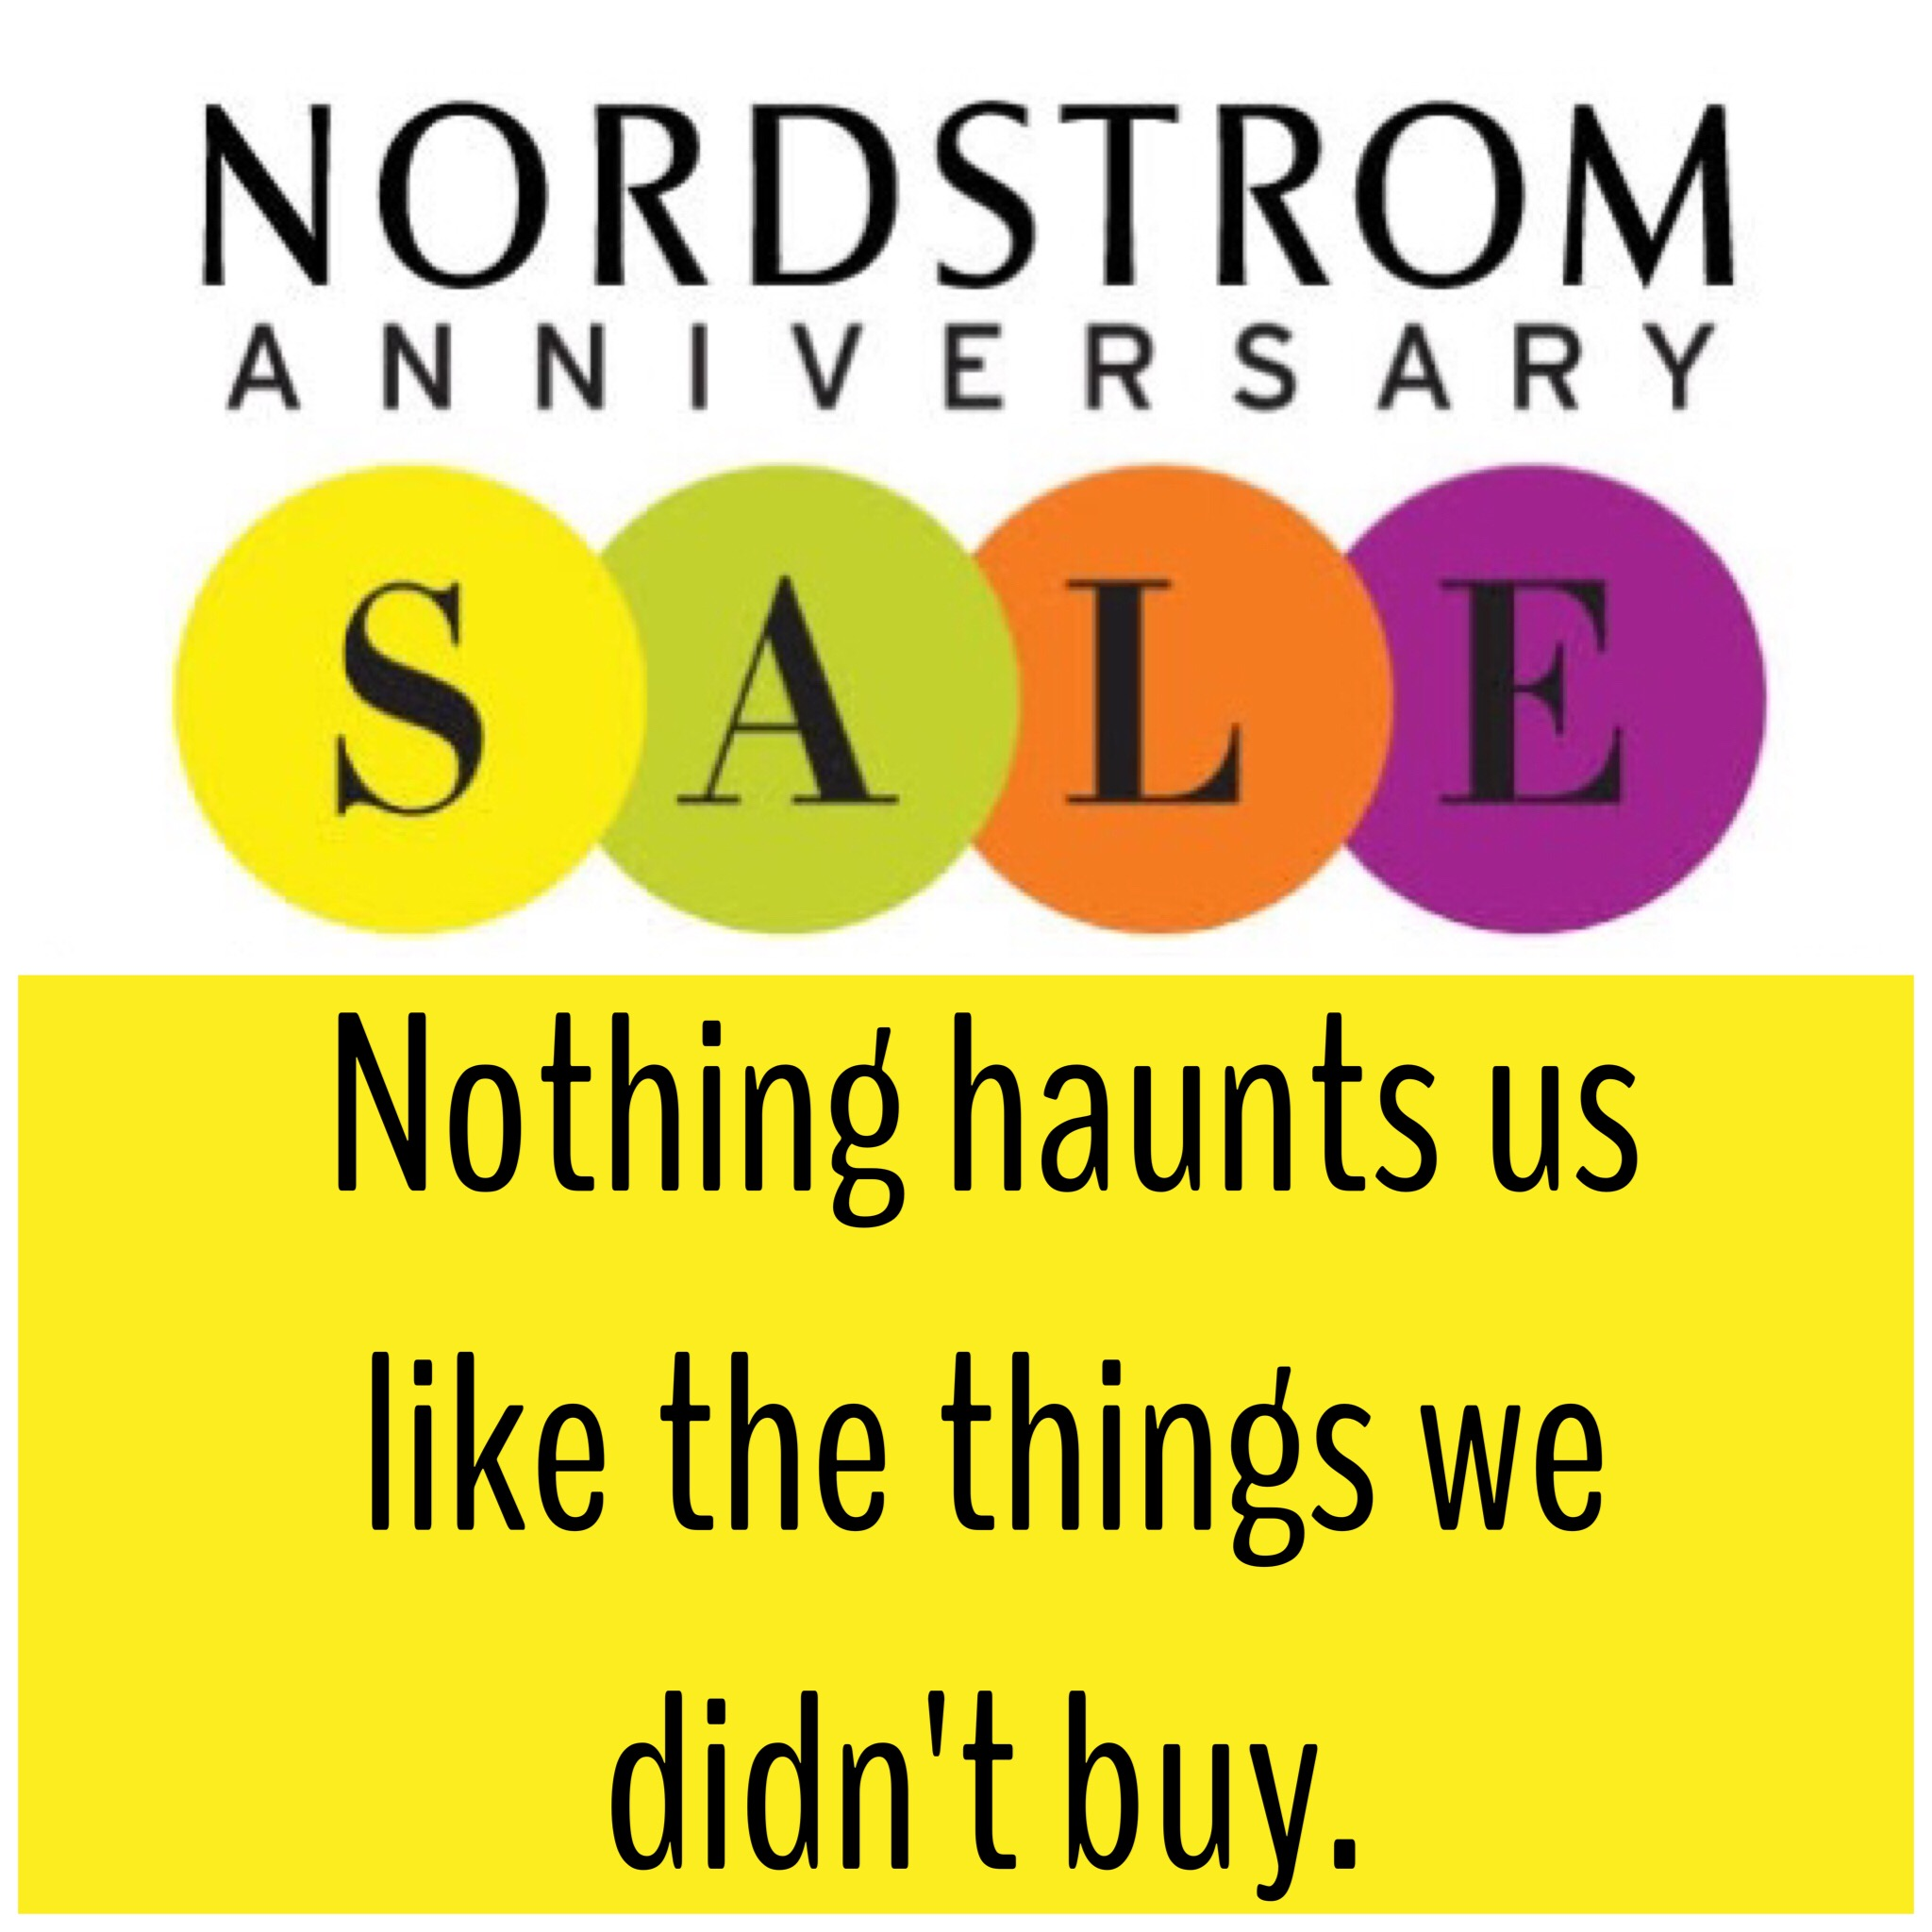 10_nordstrom_anniversary_sale_deals_not_to _miss